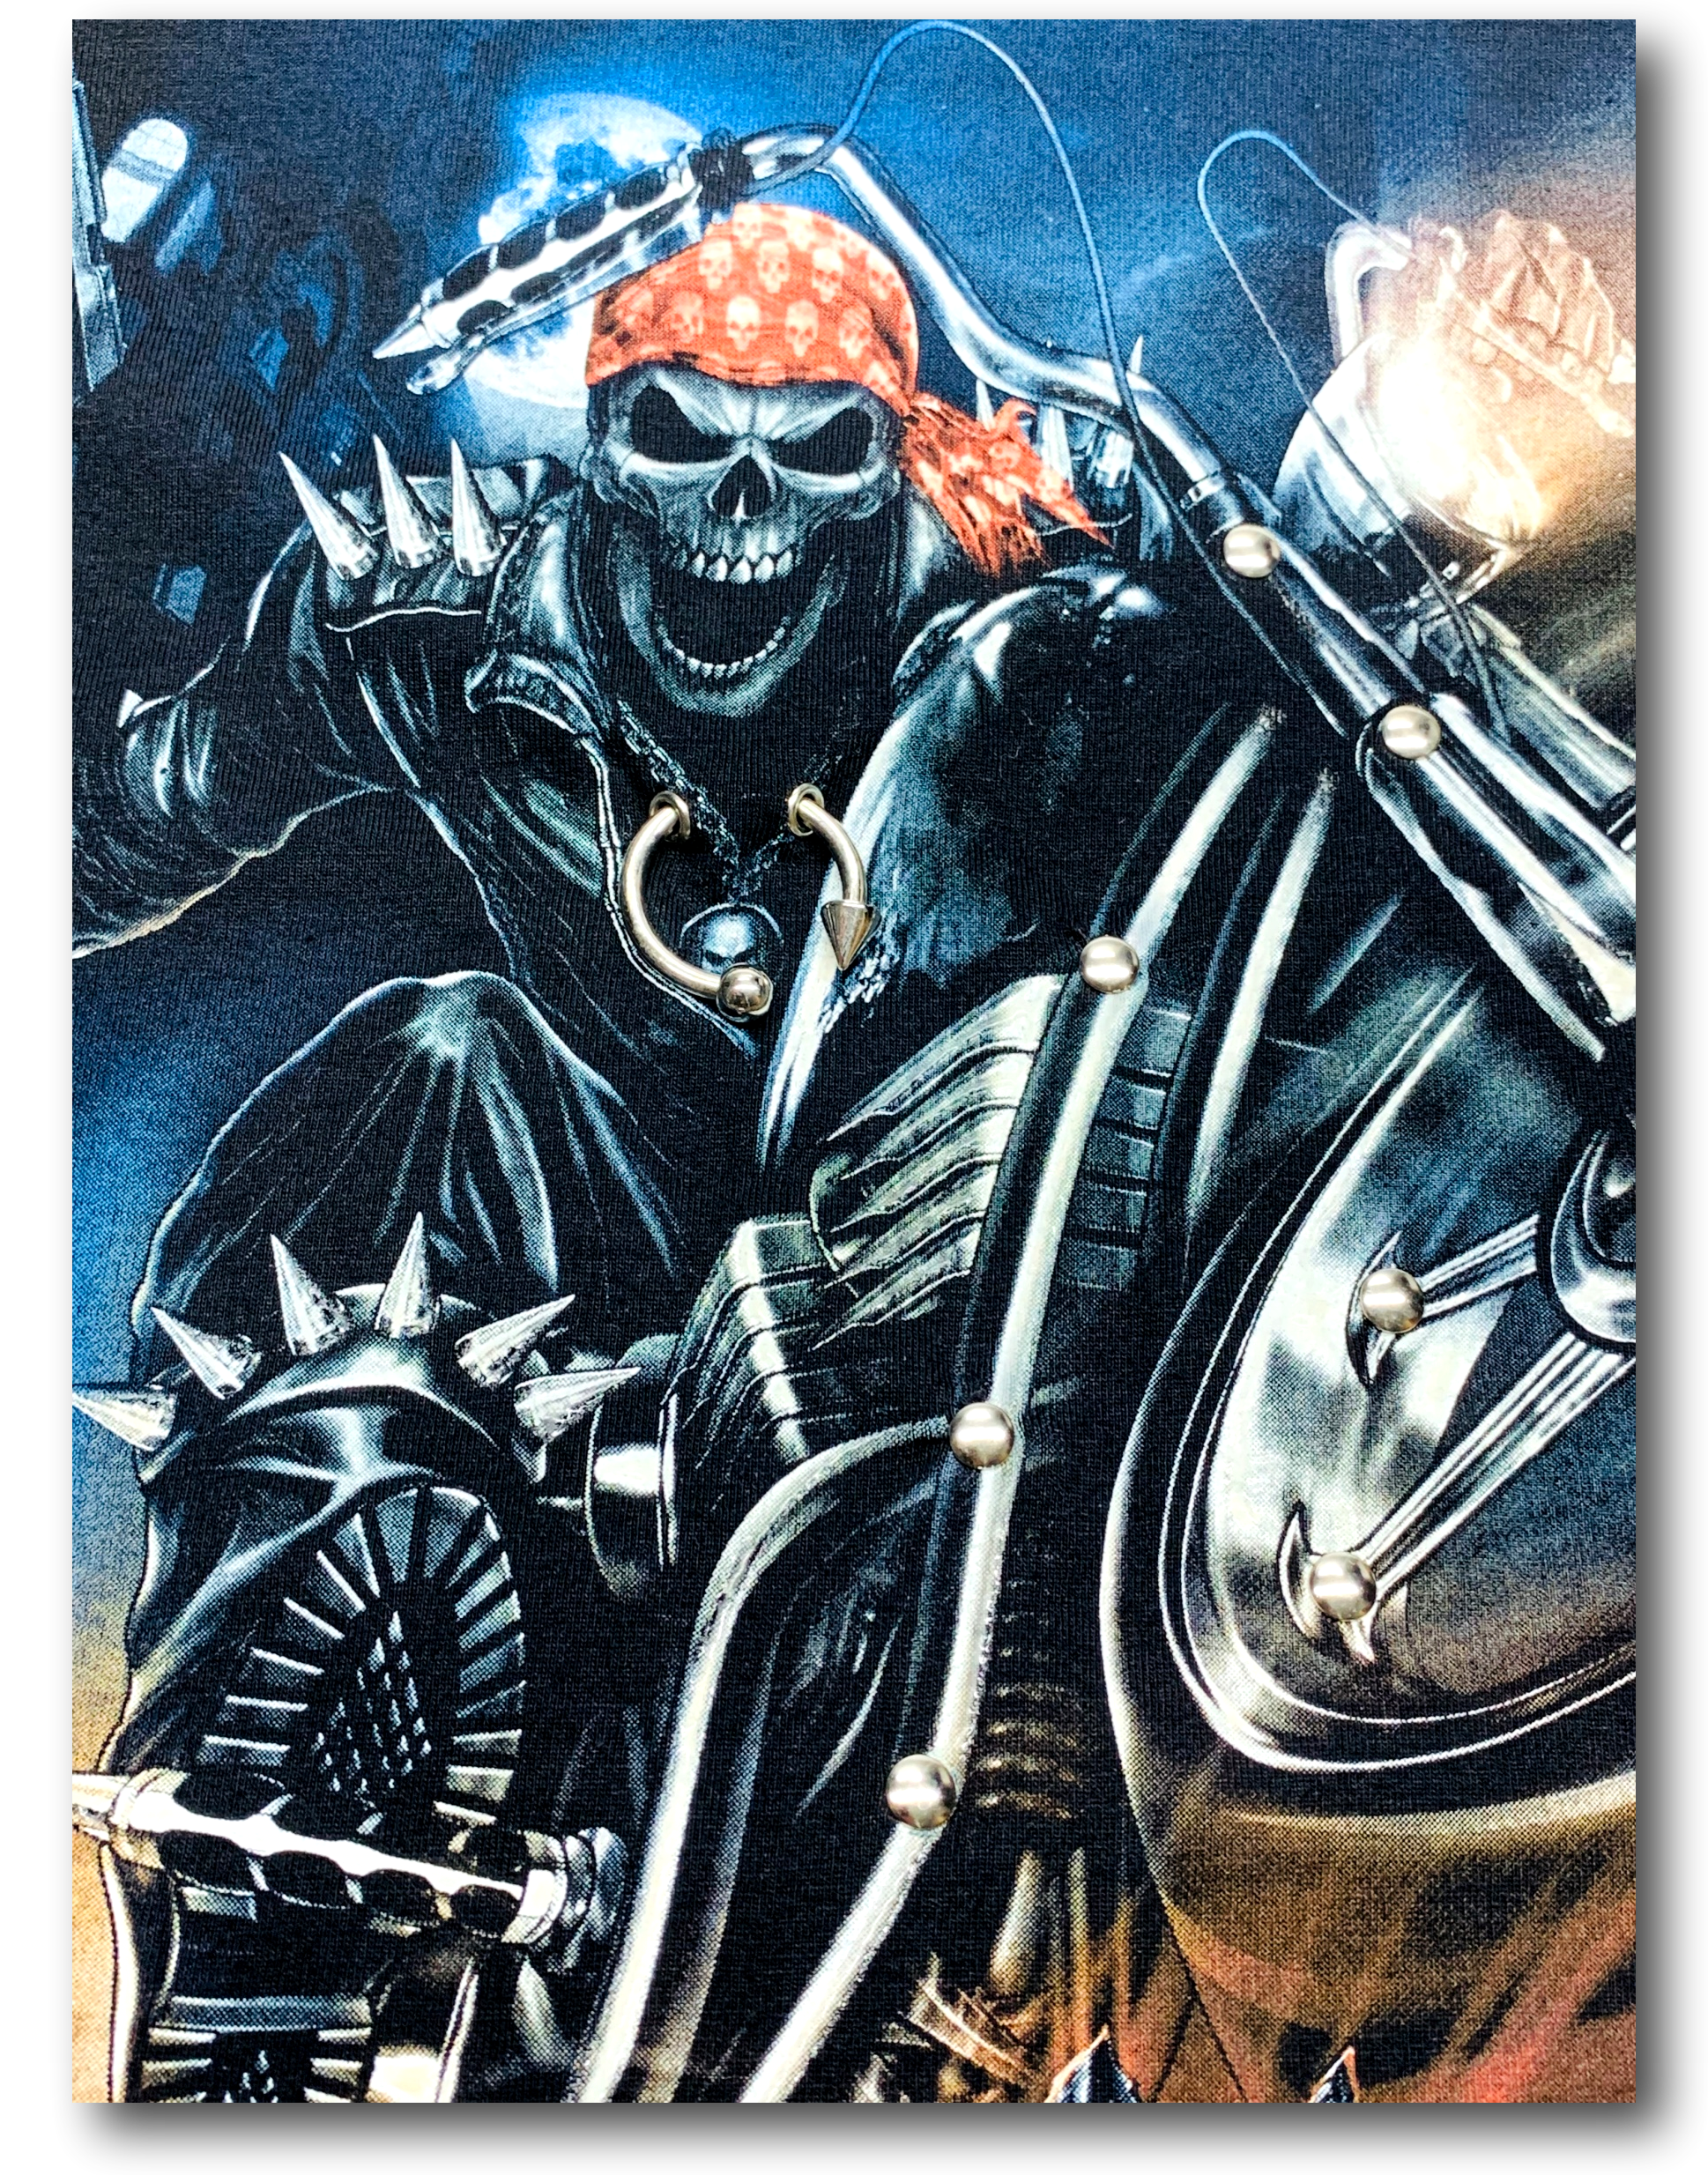 Skull Biker with Red Head Band and Metal Ring Glow in the Dark 4D Caballo T-Shirt